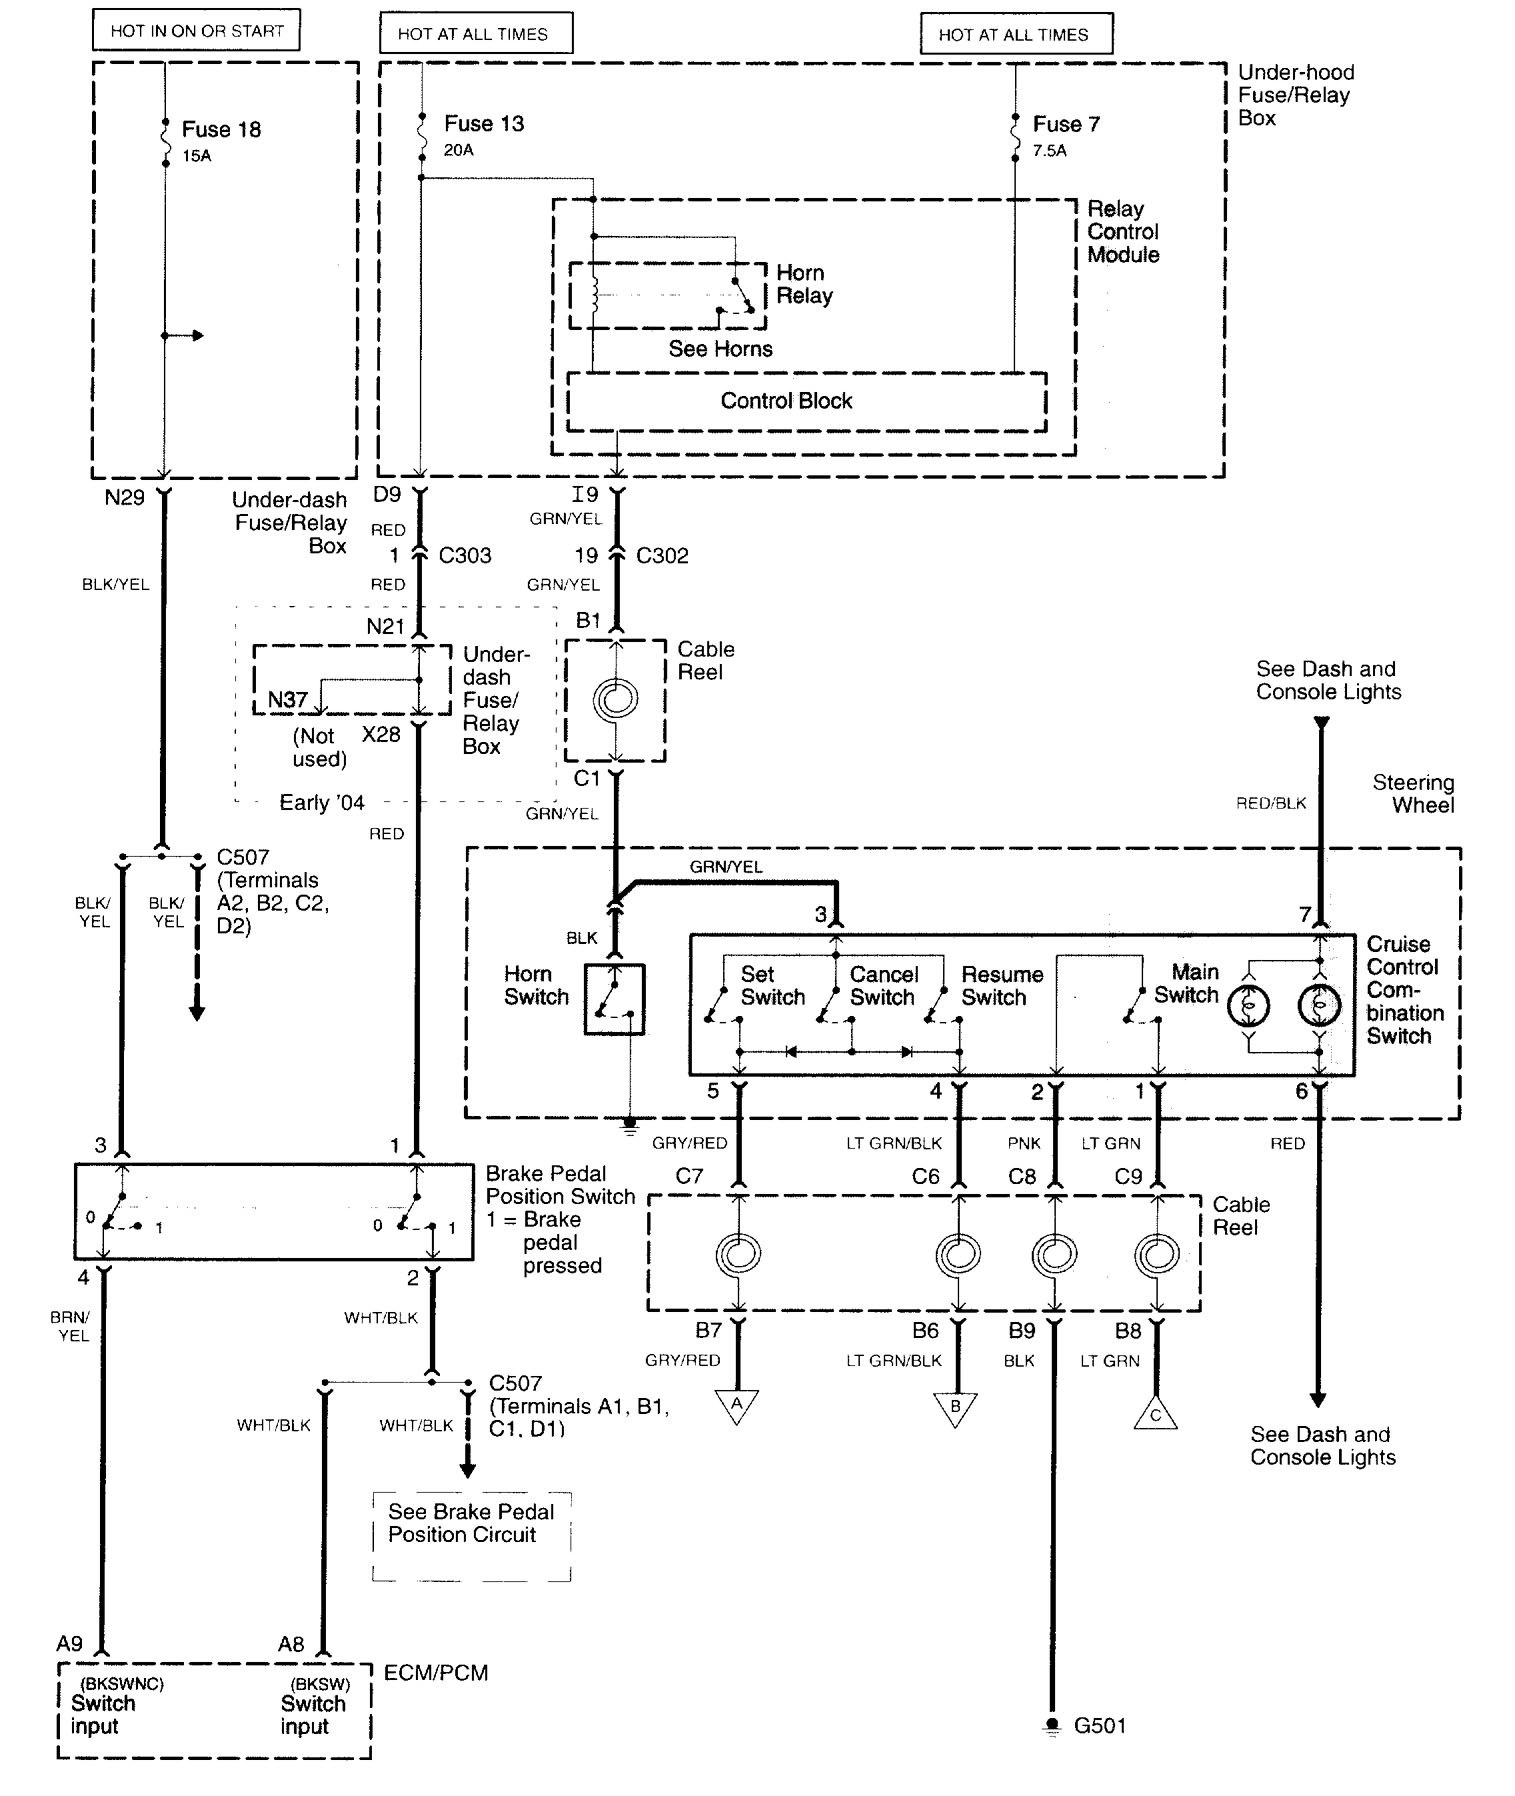 hight resolution of volvo c303 wiring diagram wiring diagram forward volvo c303 wiring diagram